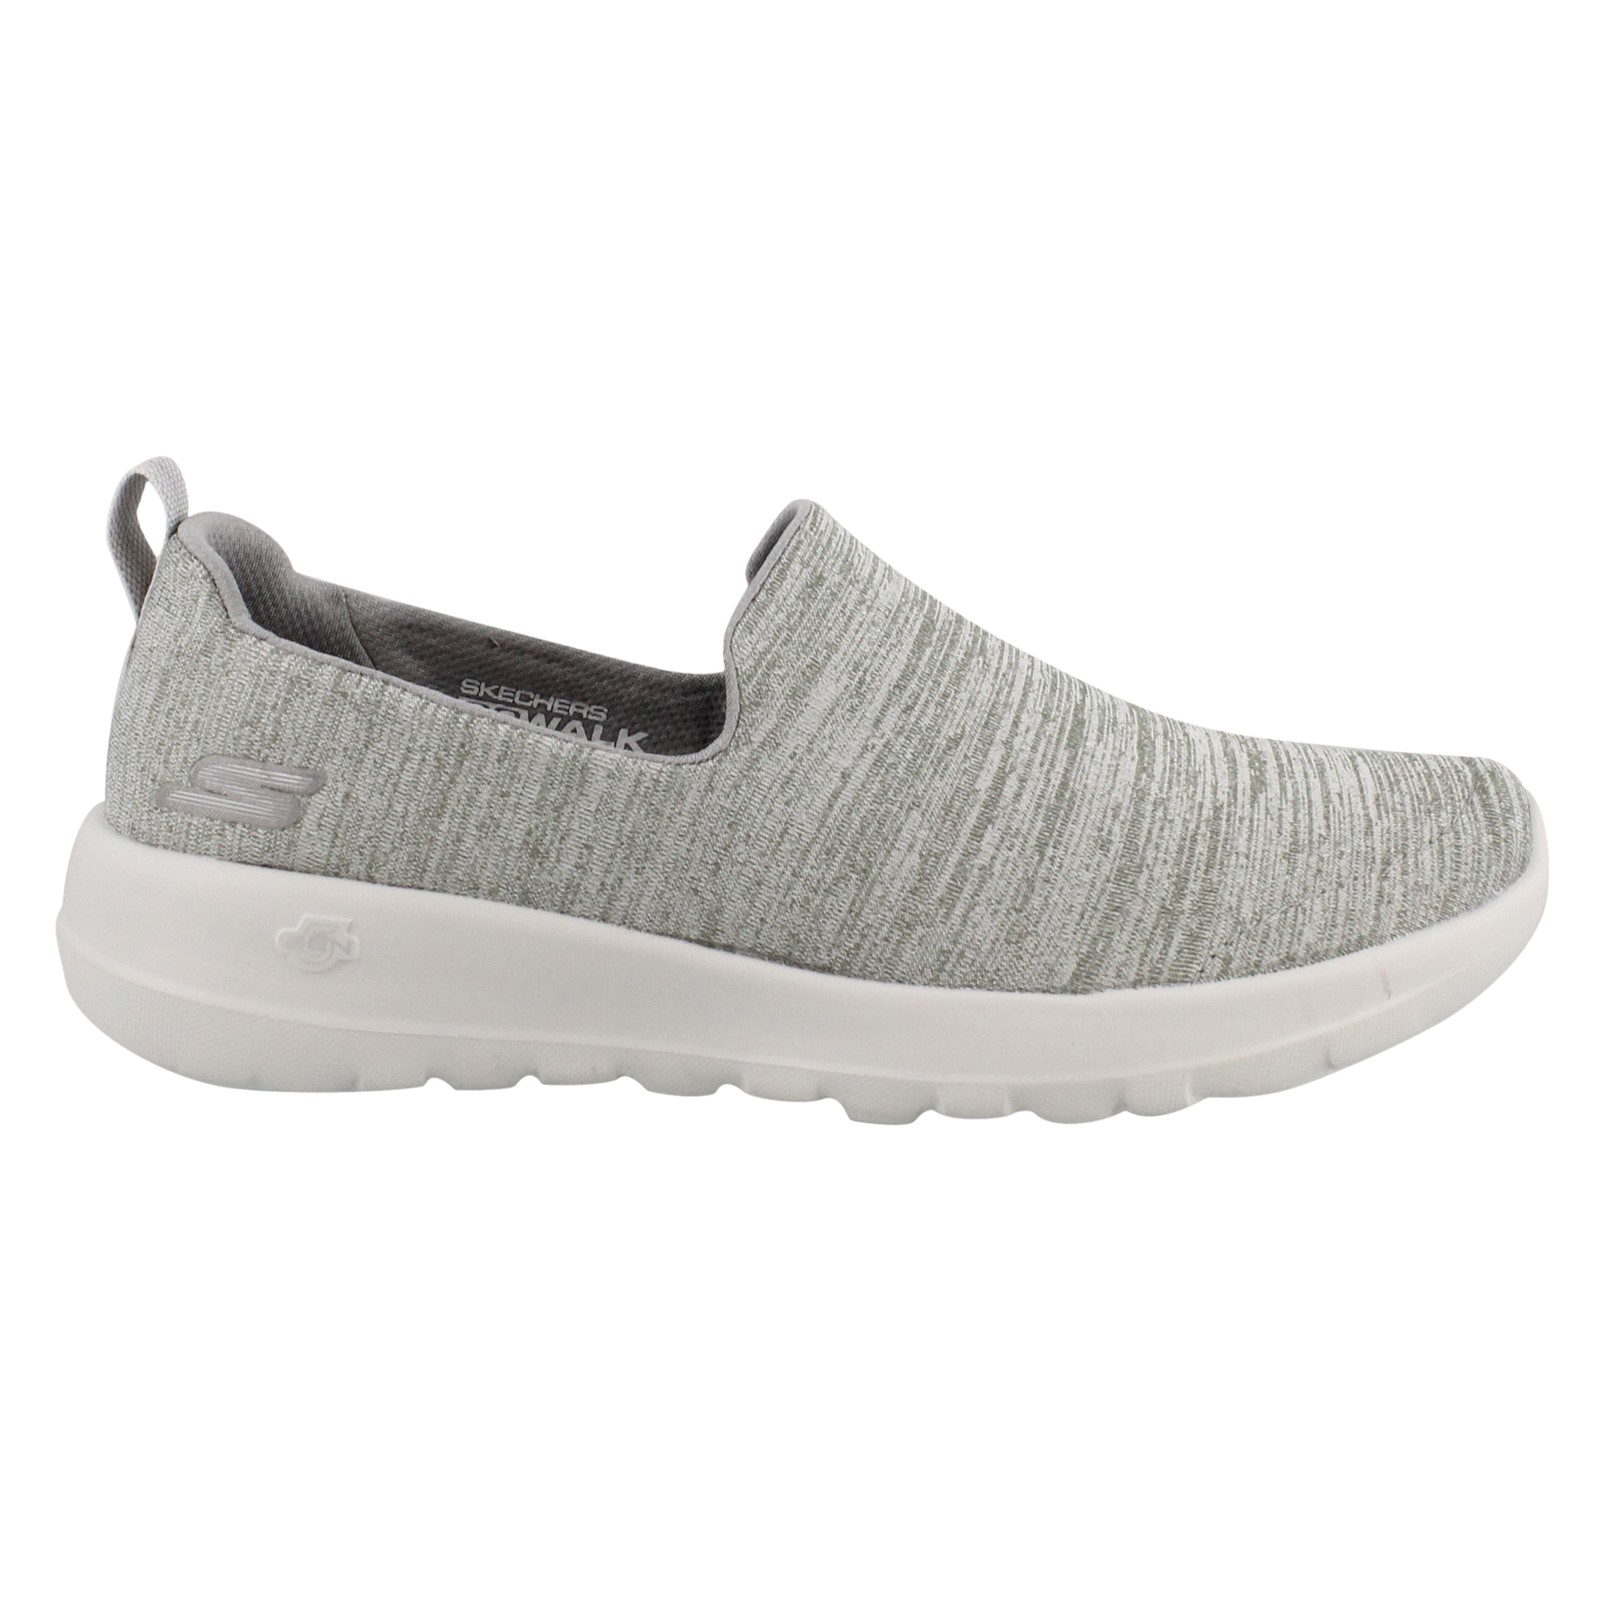 Women's Skechers Performance, Go Walk Joy Enchant Slip on Shoes Wide Width